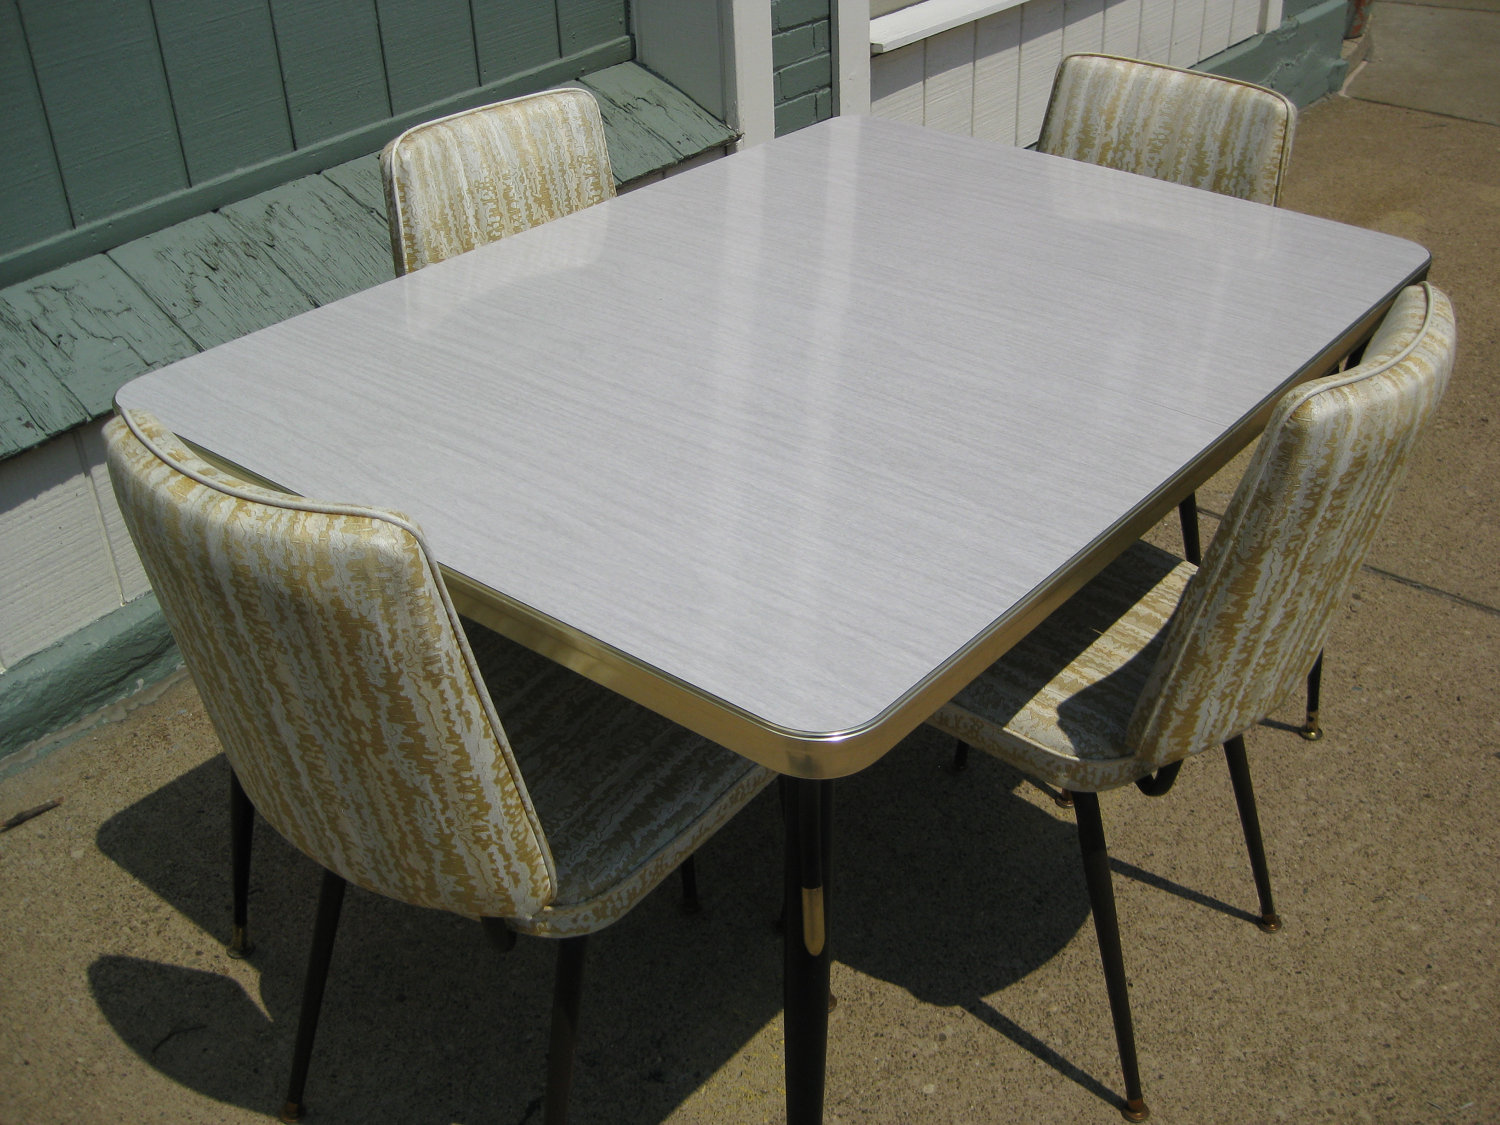 1950's retro kitchen table chairs - bringing back classic new york